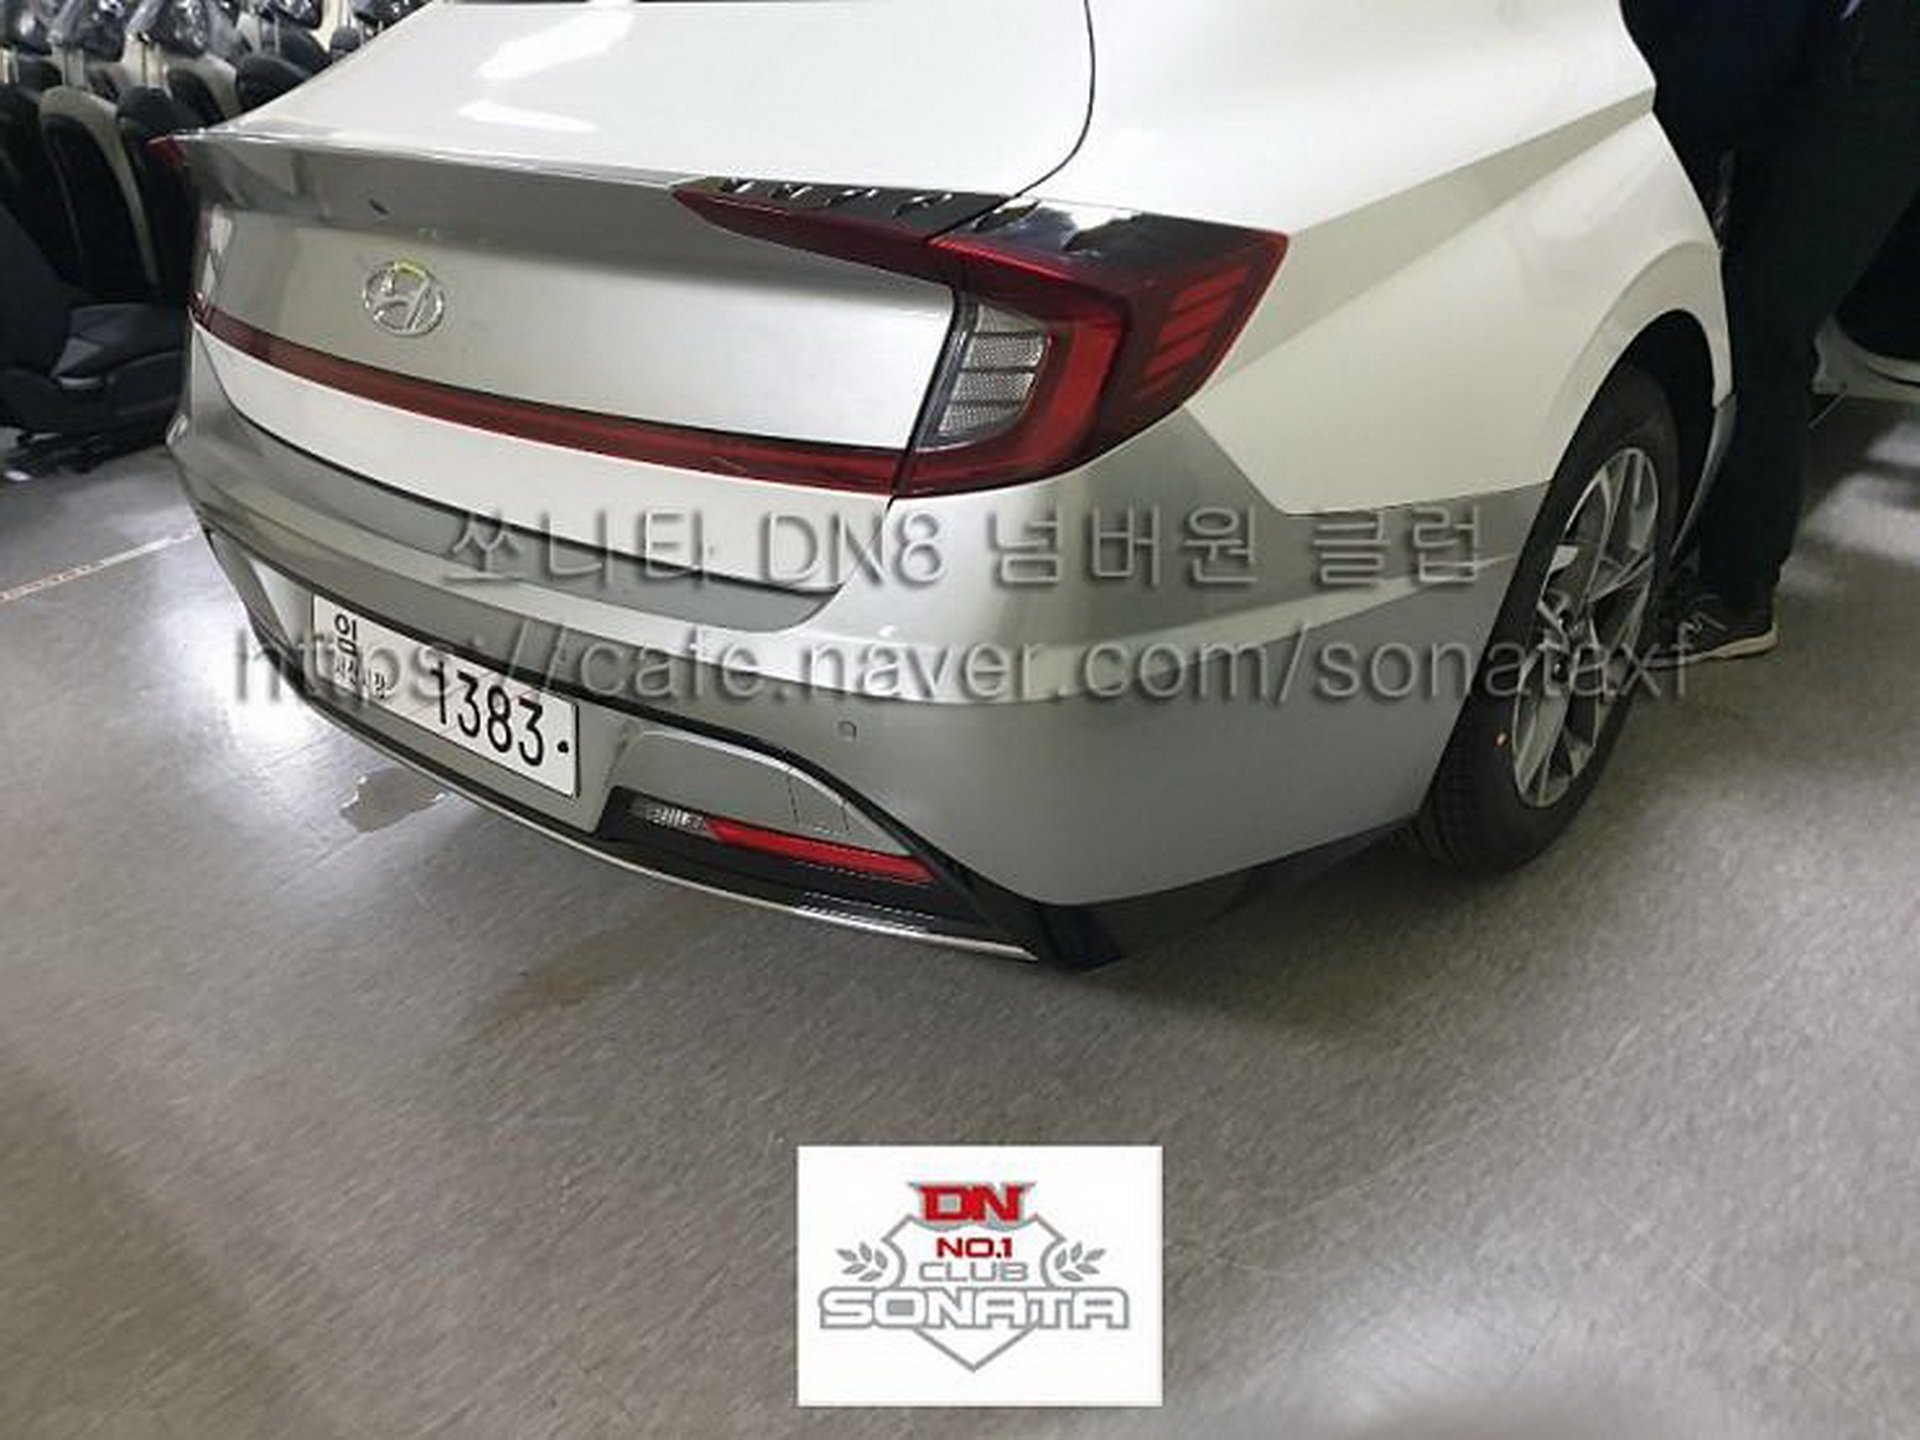 Photos showing the body and interior of the new Hyundai Sonata have become available recently